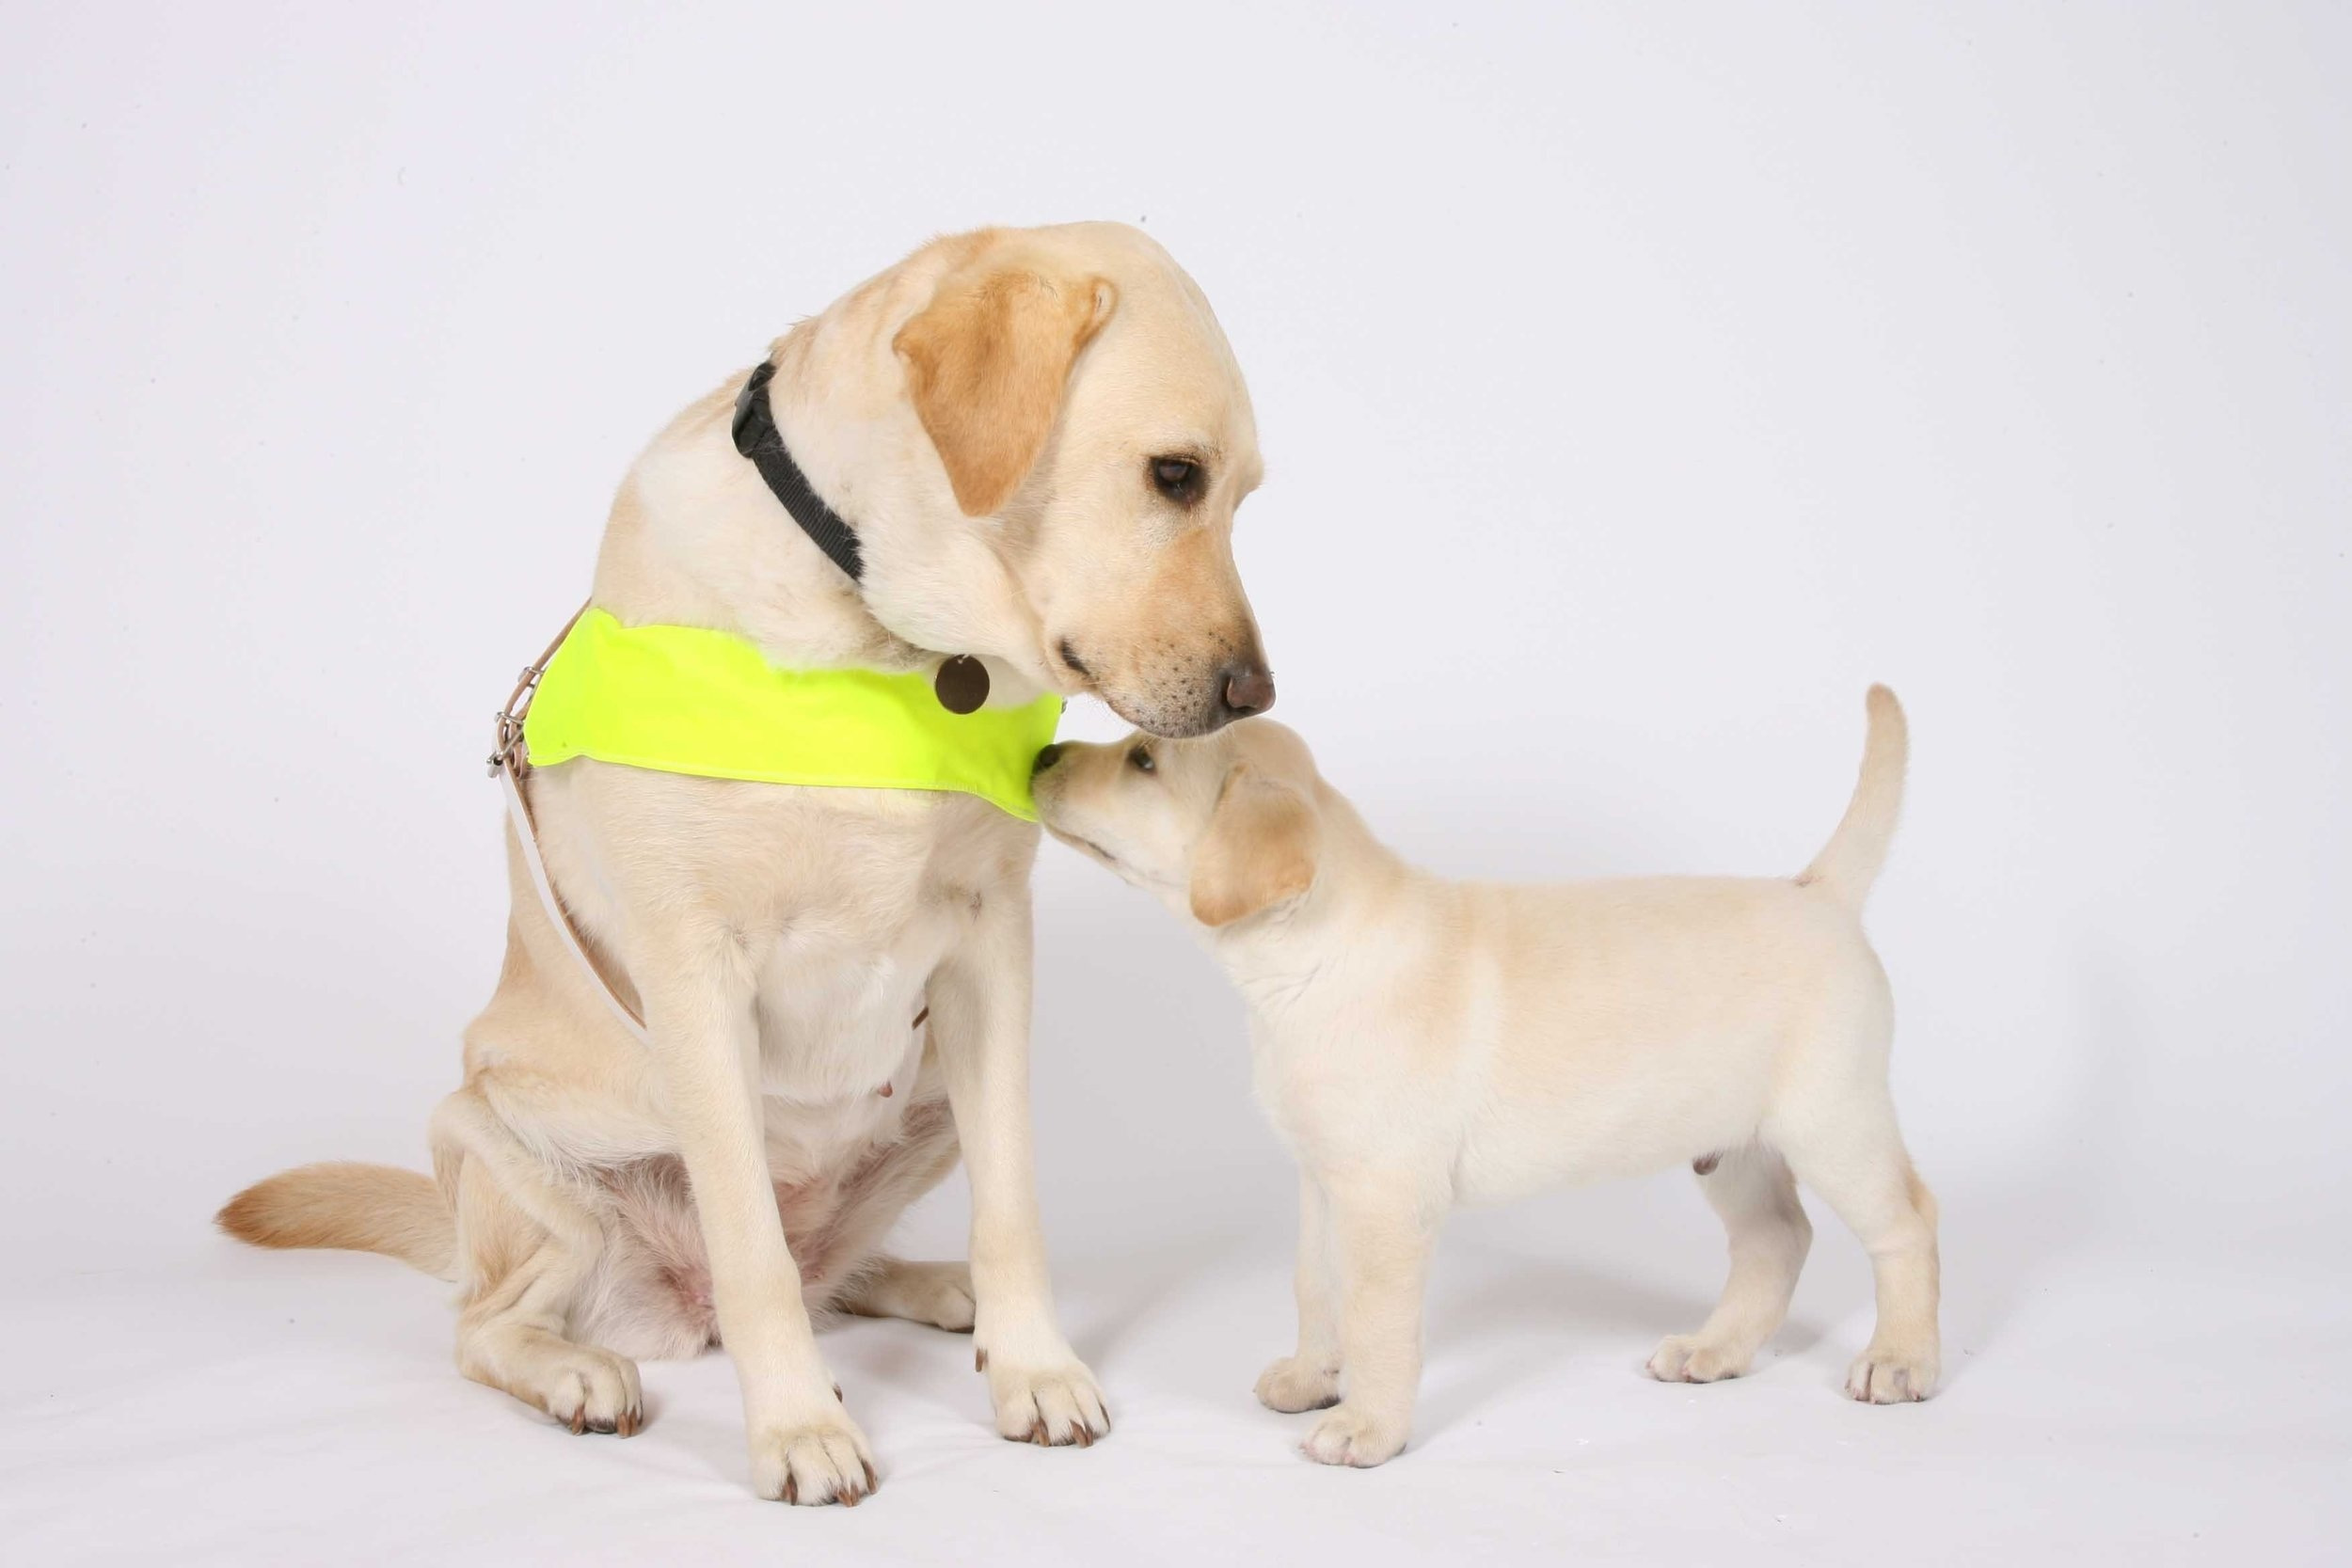 GUIDE DOGS CHARITY - This year we are supporting the Guide Dogs charity to raise £2,500 to name a guide dog. With two guide dogs in the village it is a charity close to our heart.